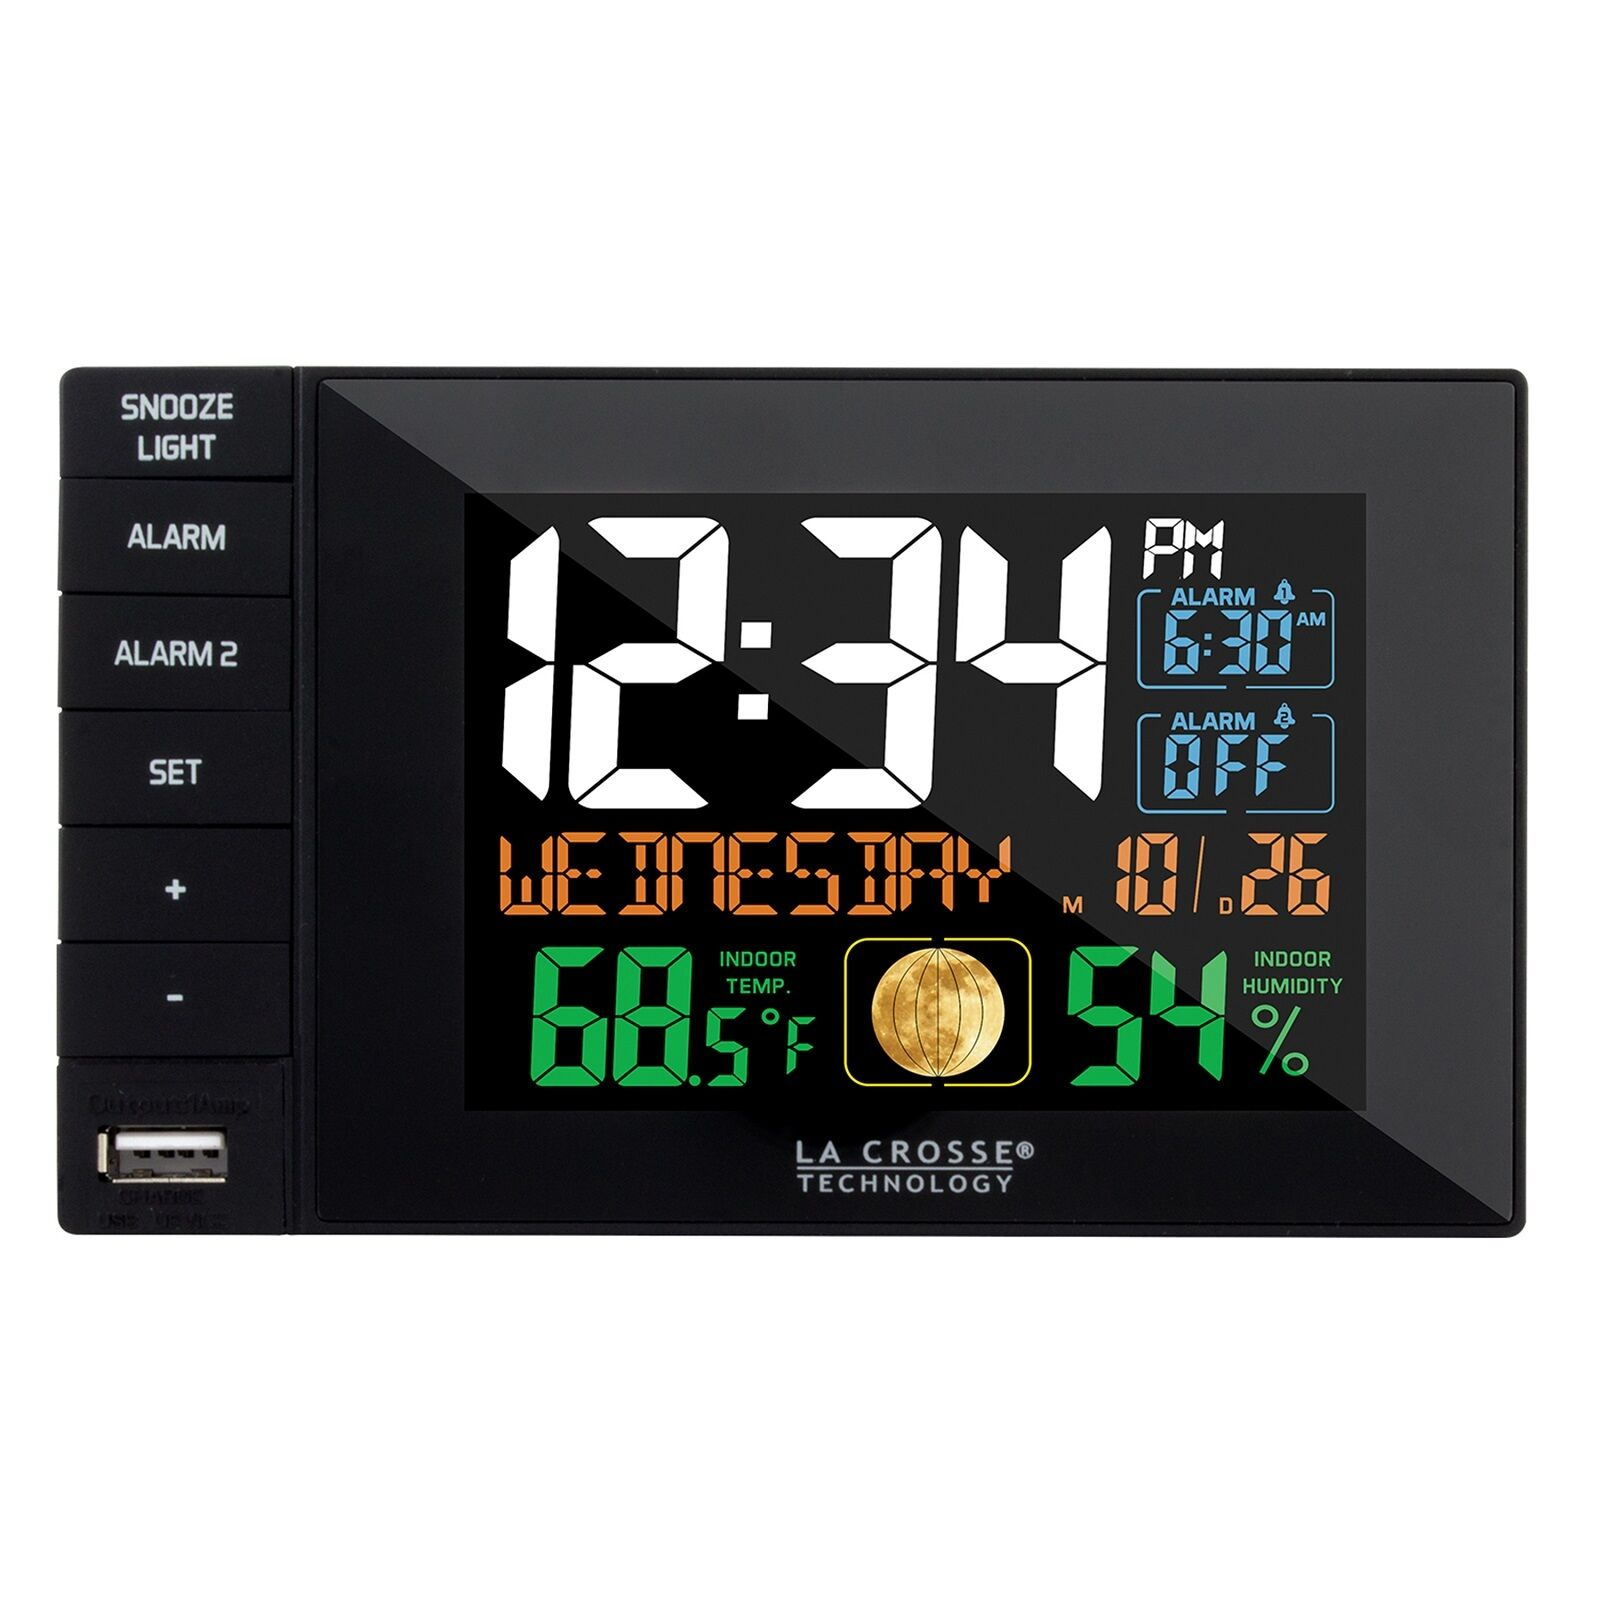 Digital alarm clocks with temperature display ebay la crosse technology dual alarm clock with usb charging port black c87207 amipublicfo Images